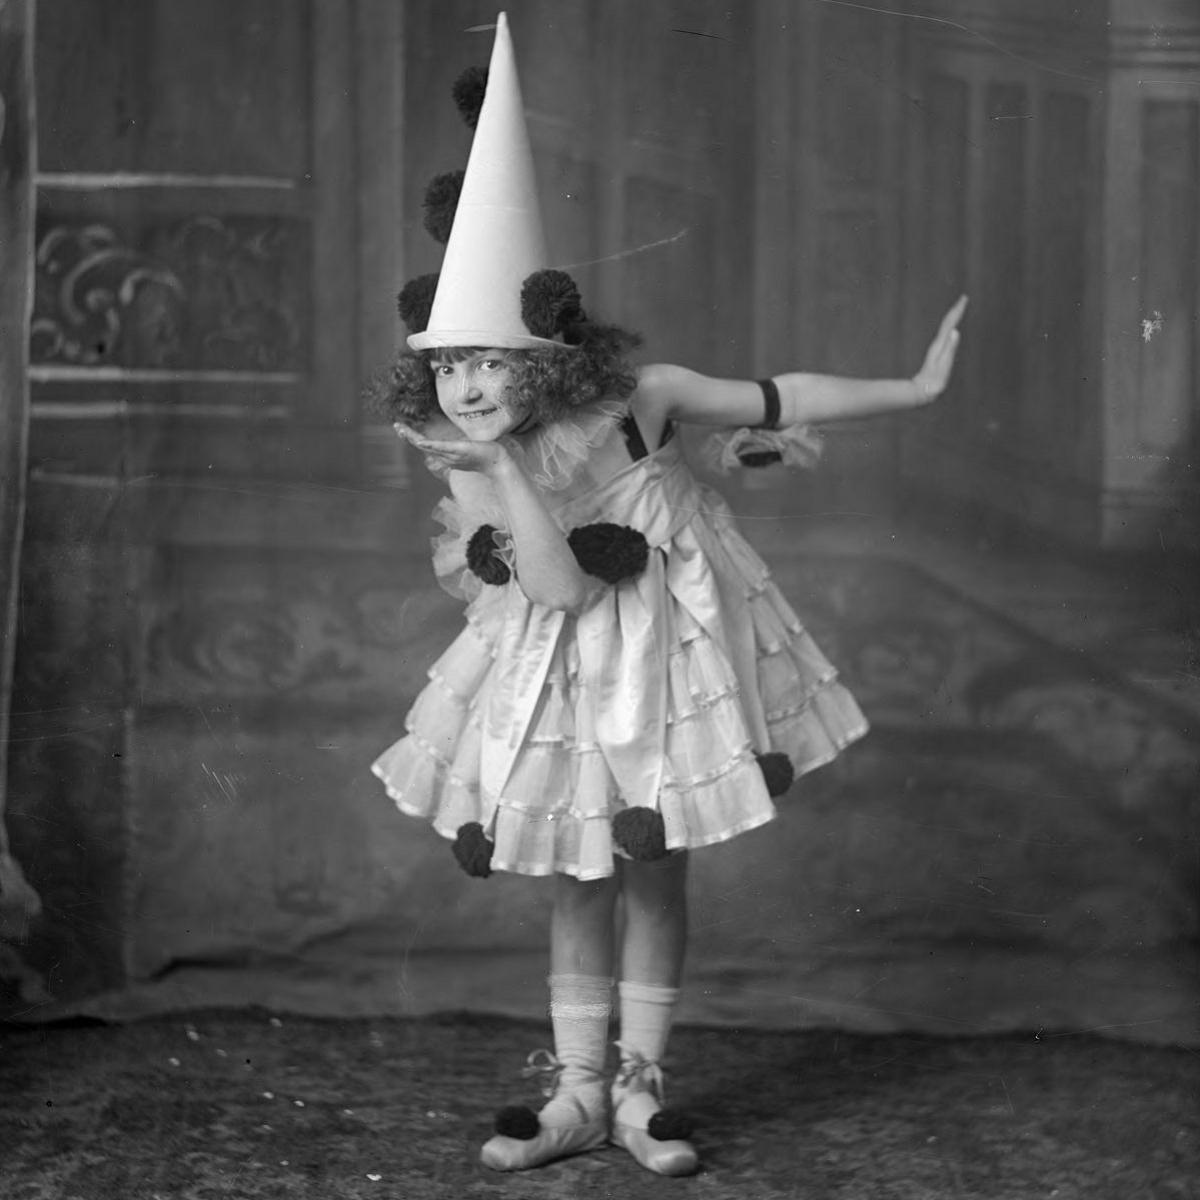 Child posing in Pierrot costume in 1915